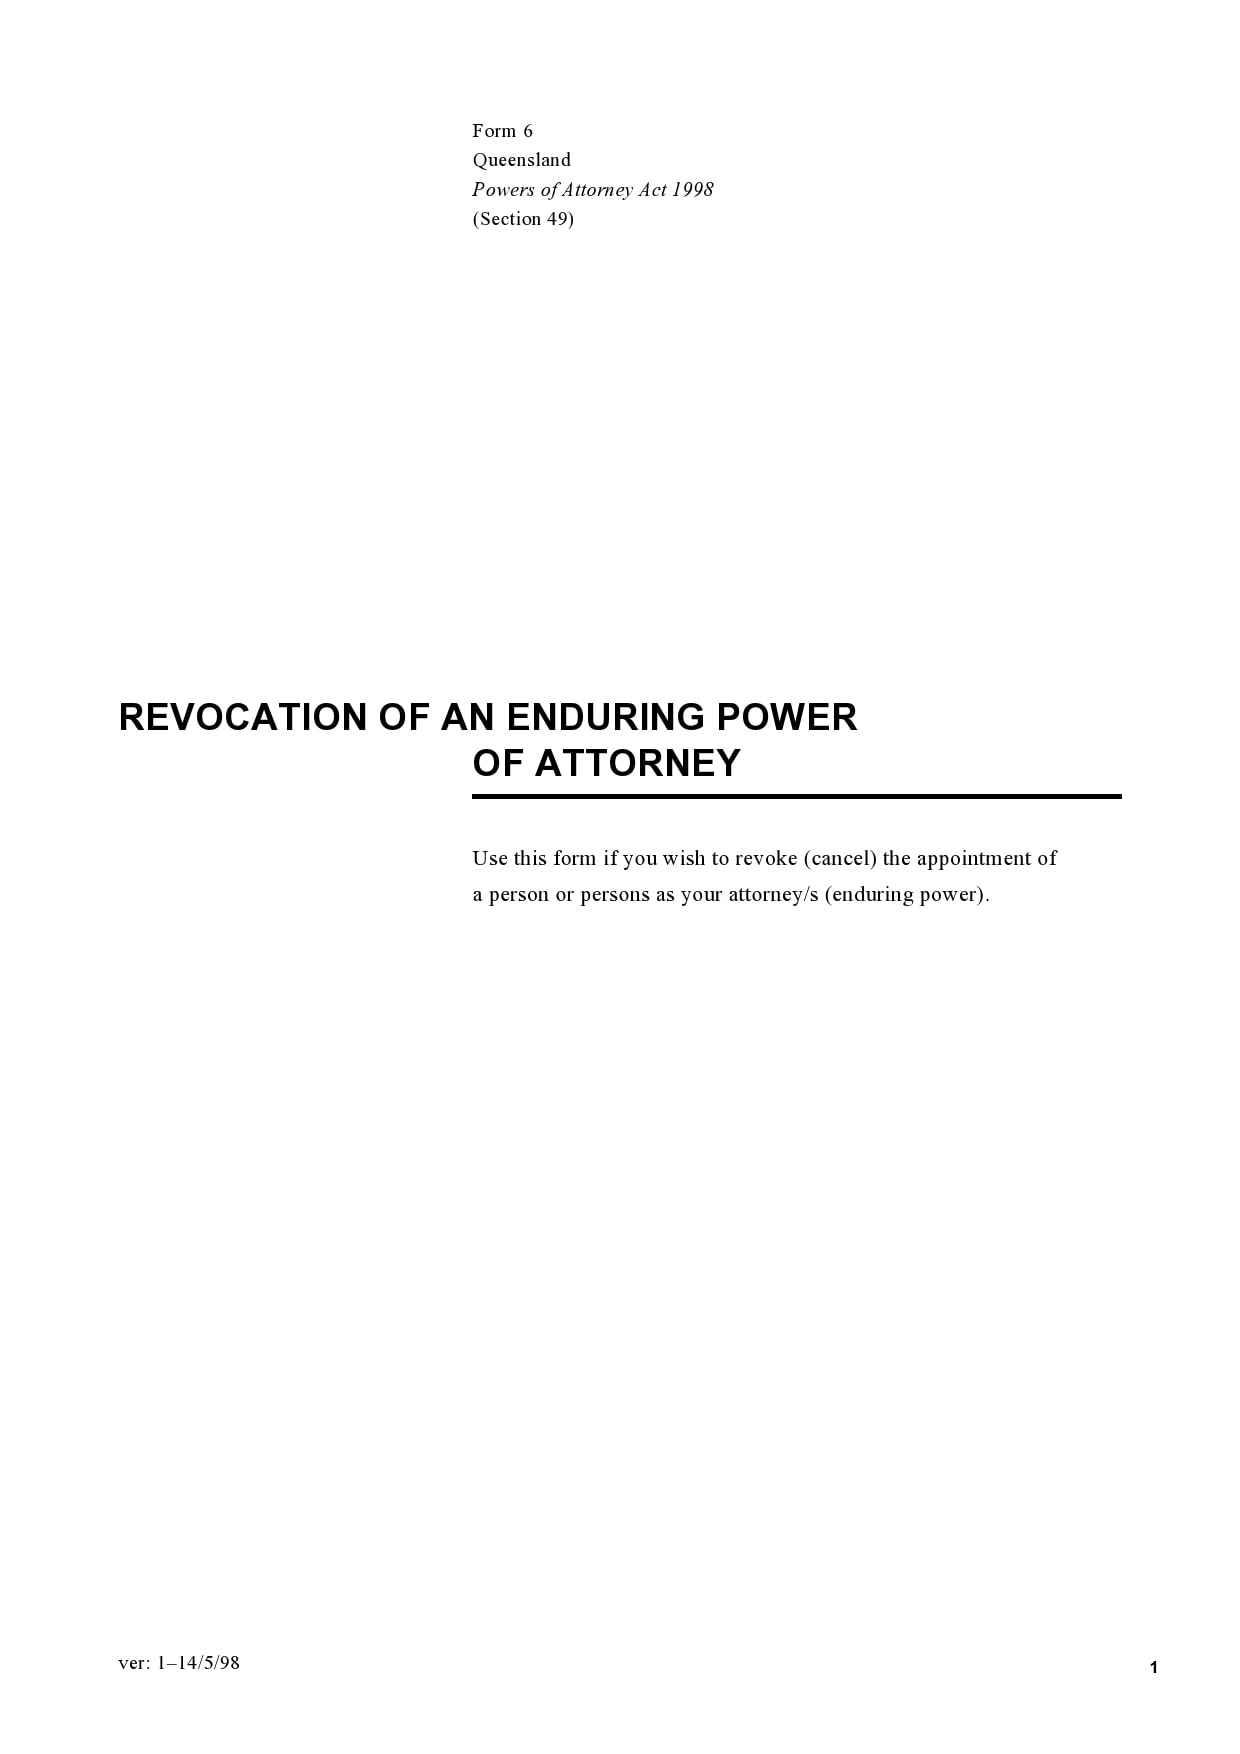 power of attorney revocation form 05